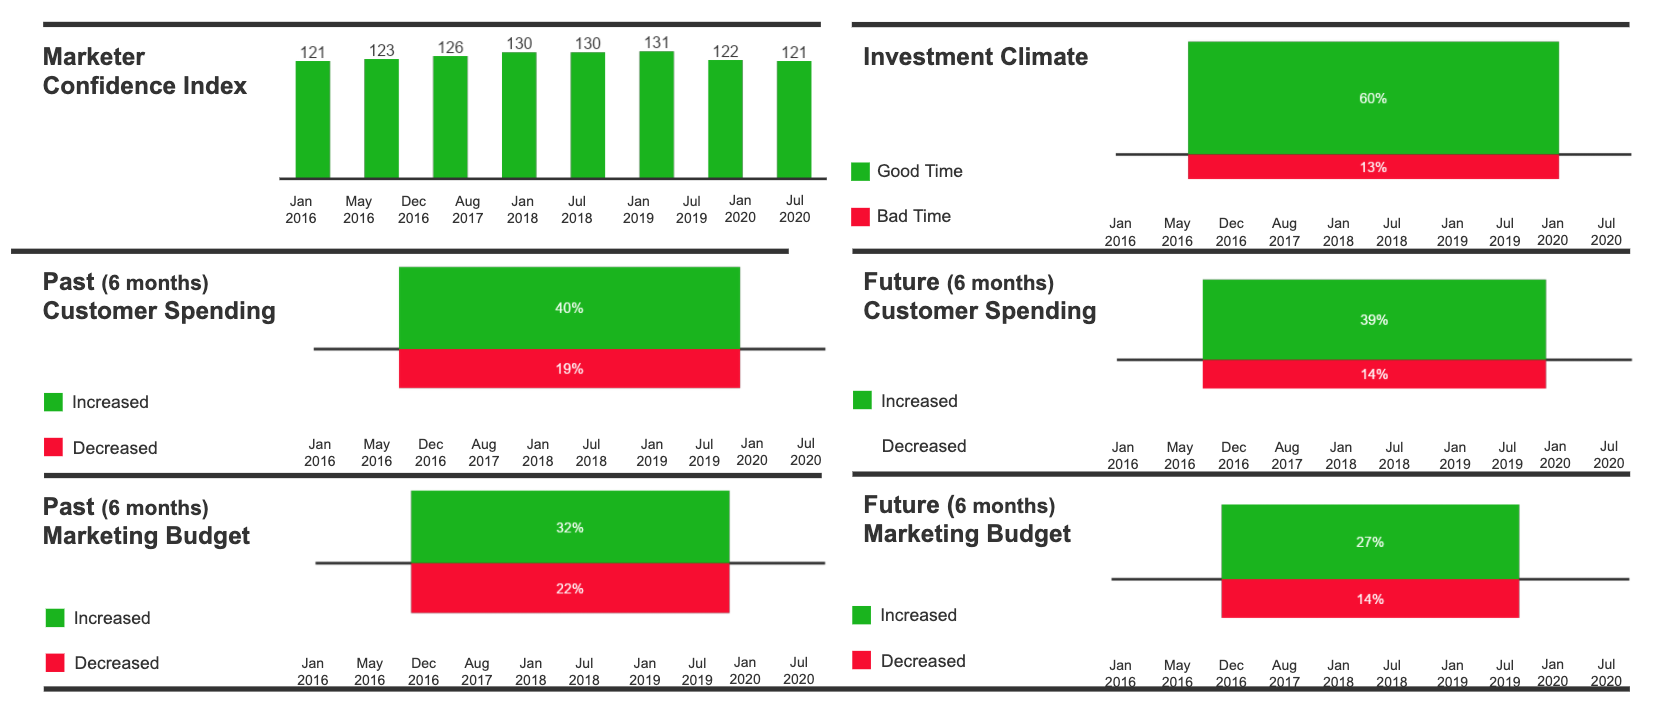 graphs depicting marketers' confidence and outlook on spending